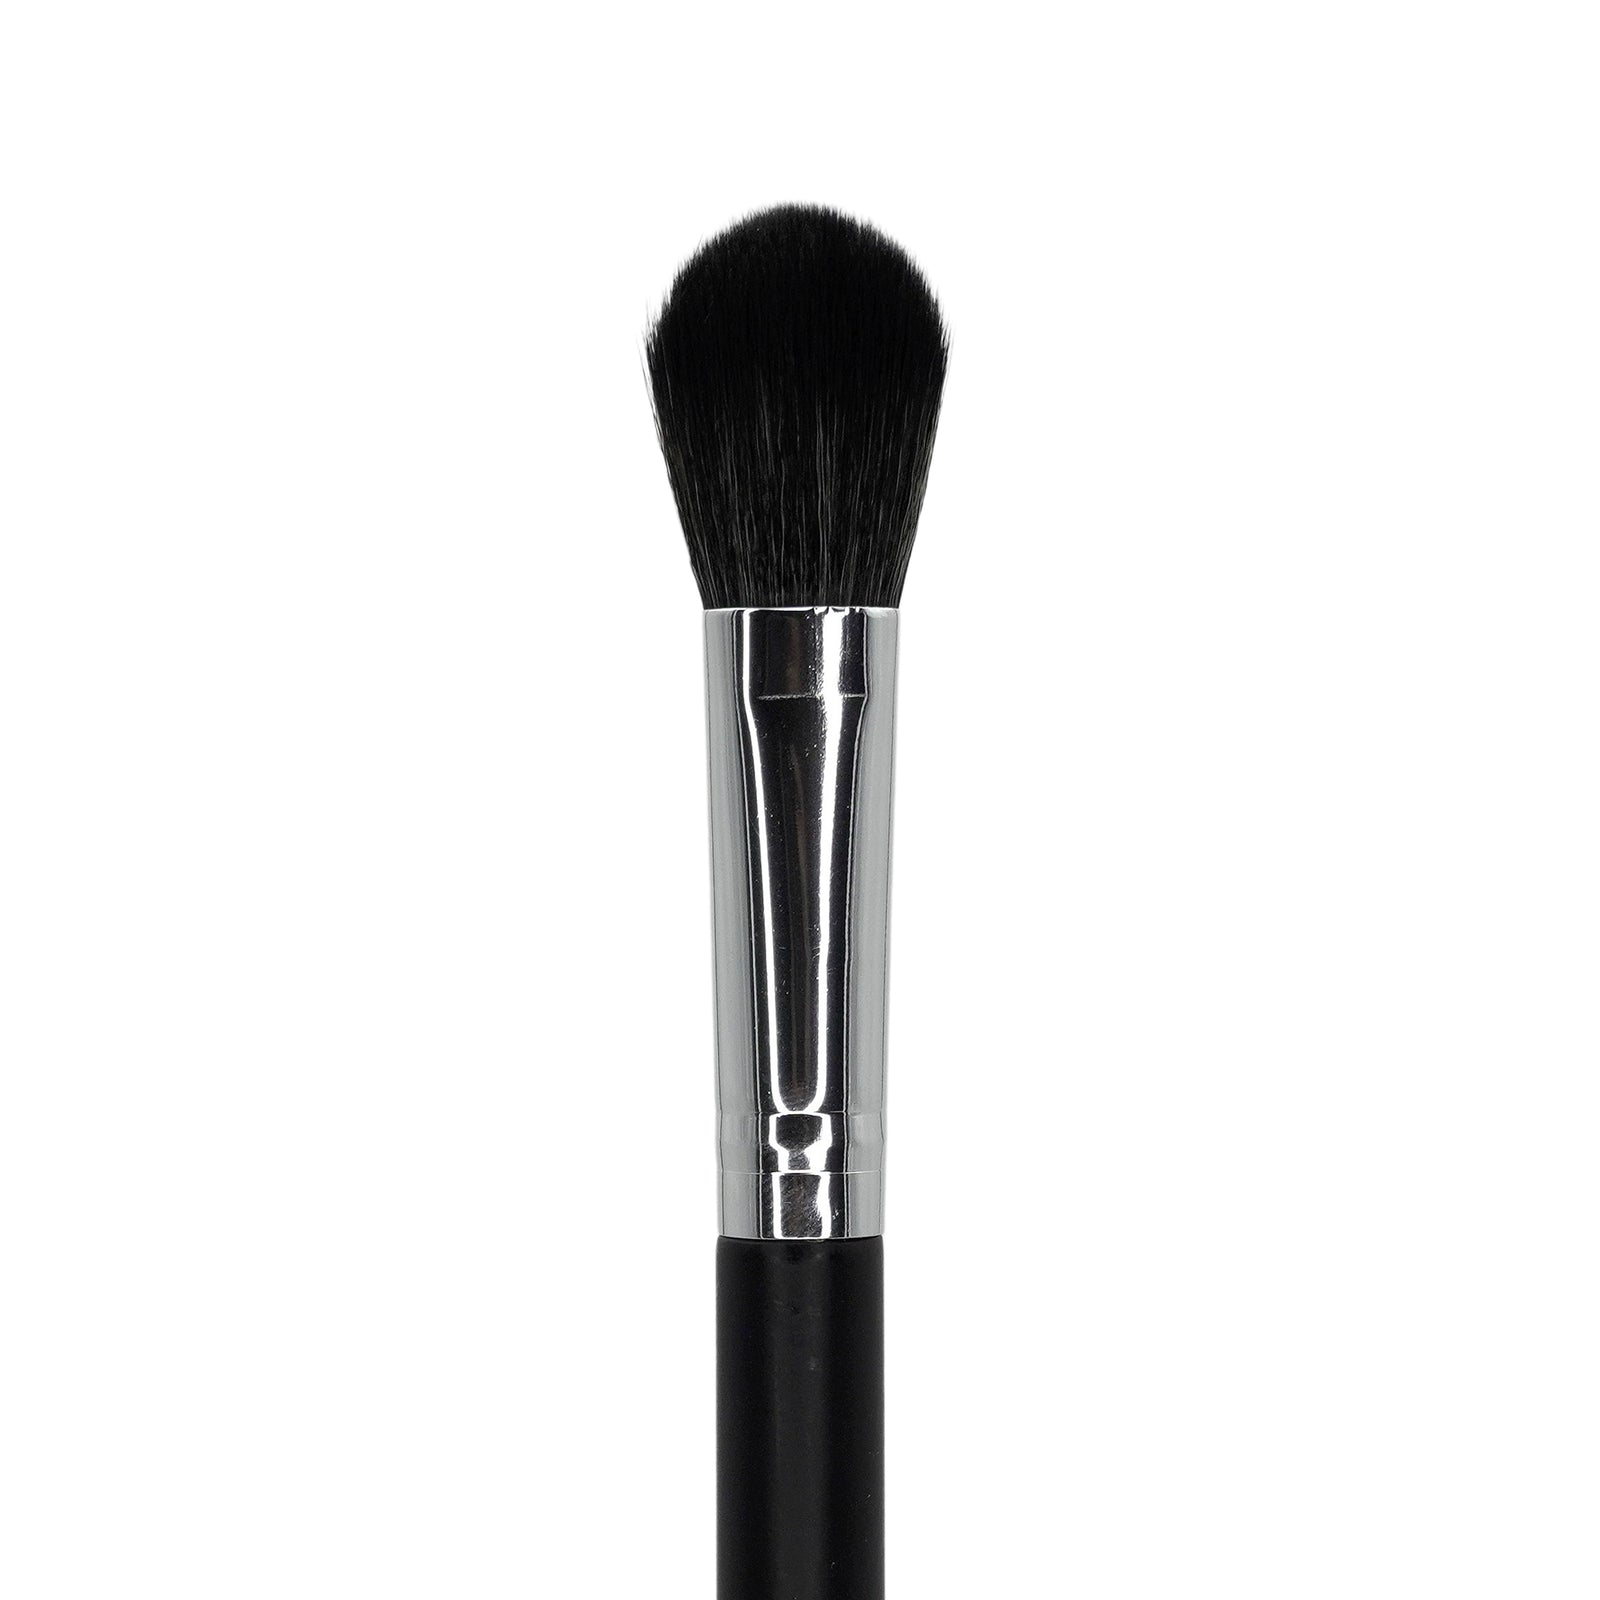 Crownbrush C534 Precision Contour